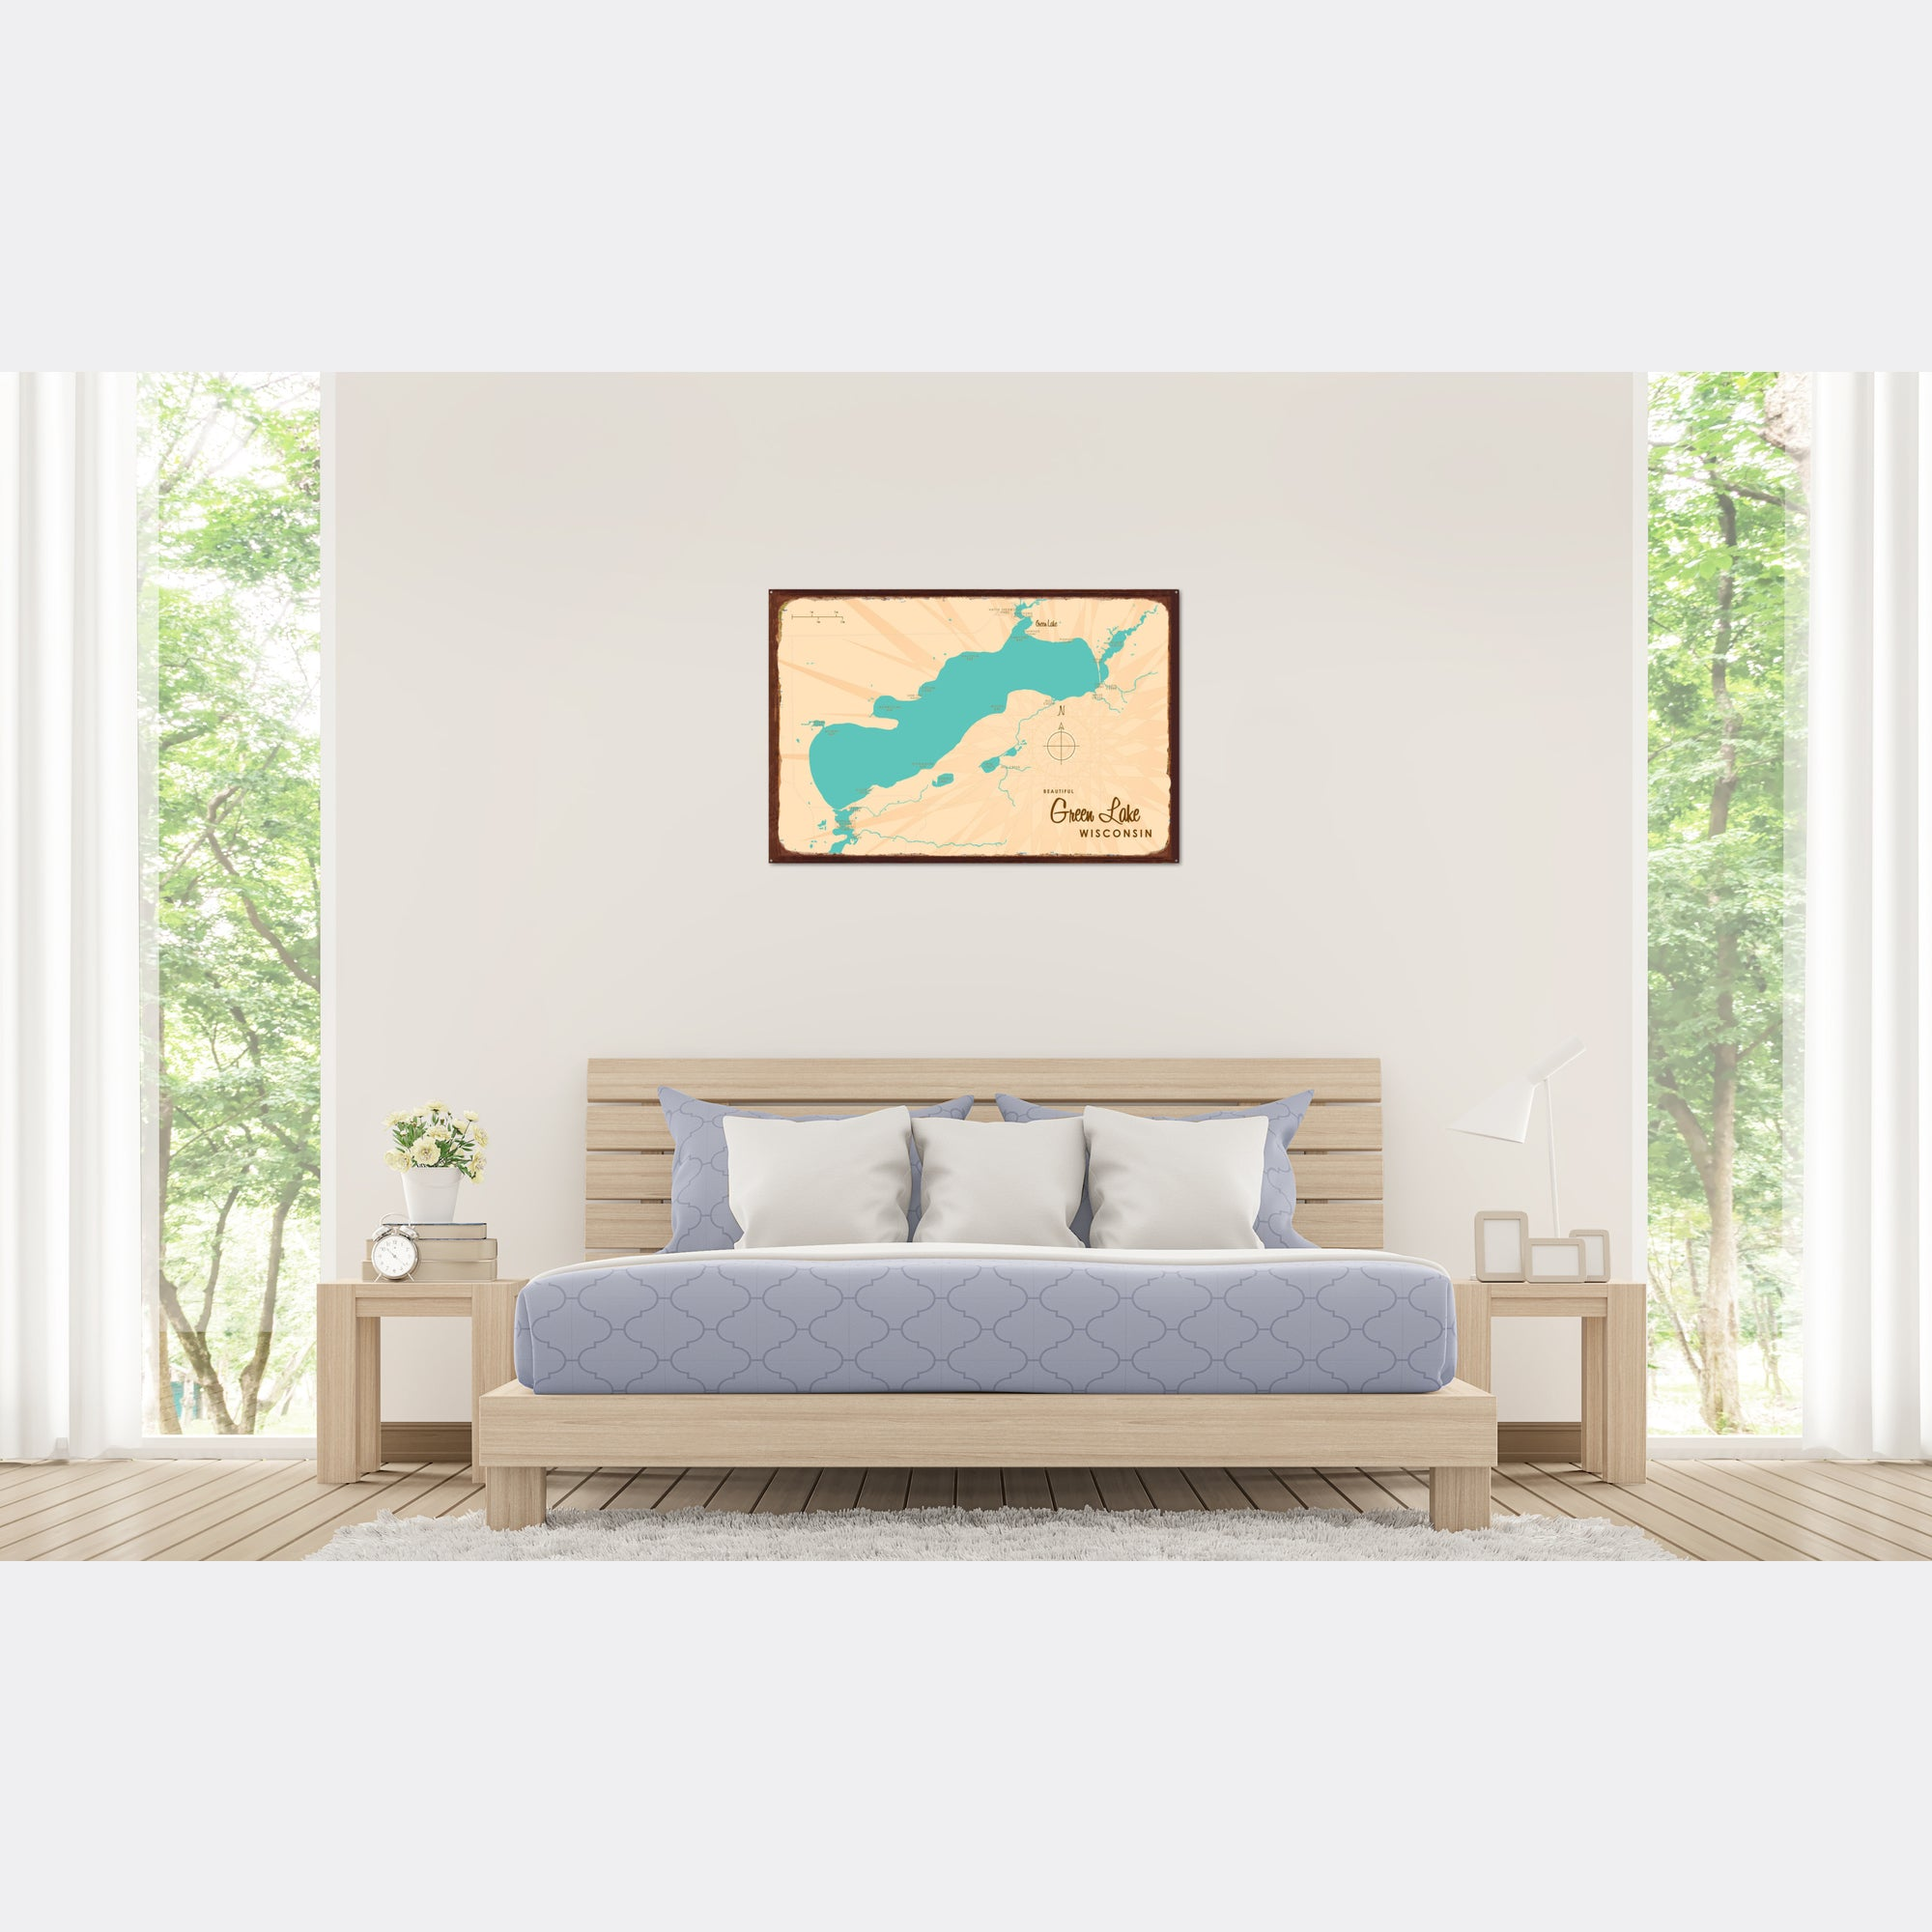 Green Lake Wisconsin, Rustic Metal Sign Map Art